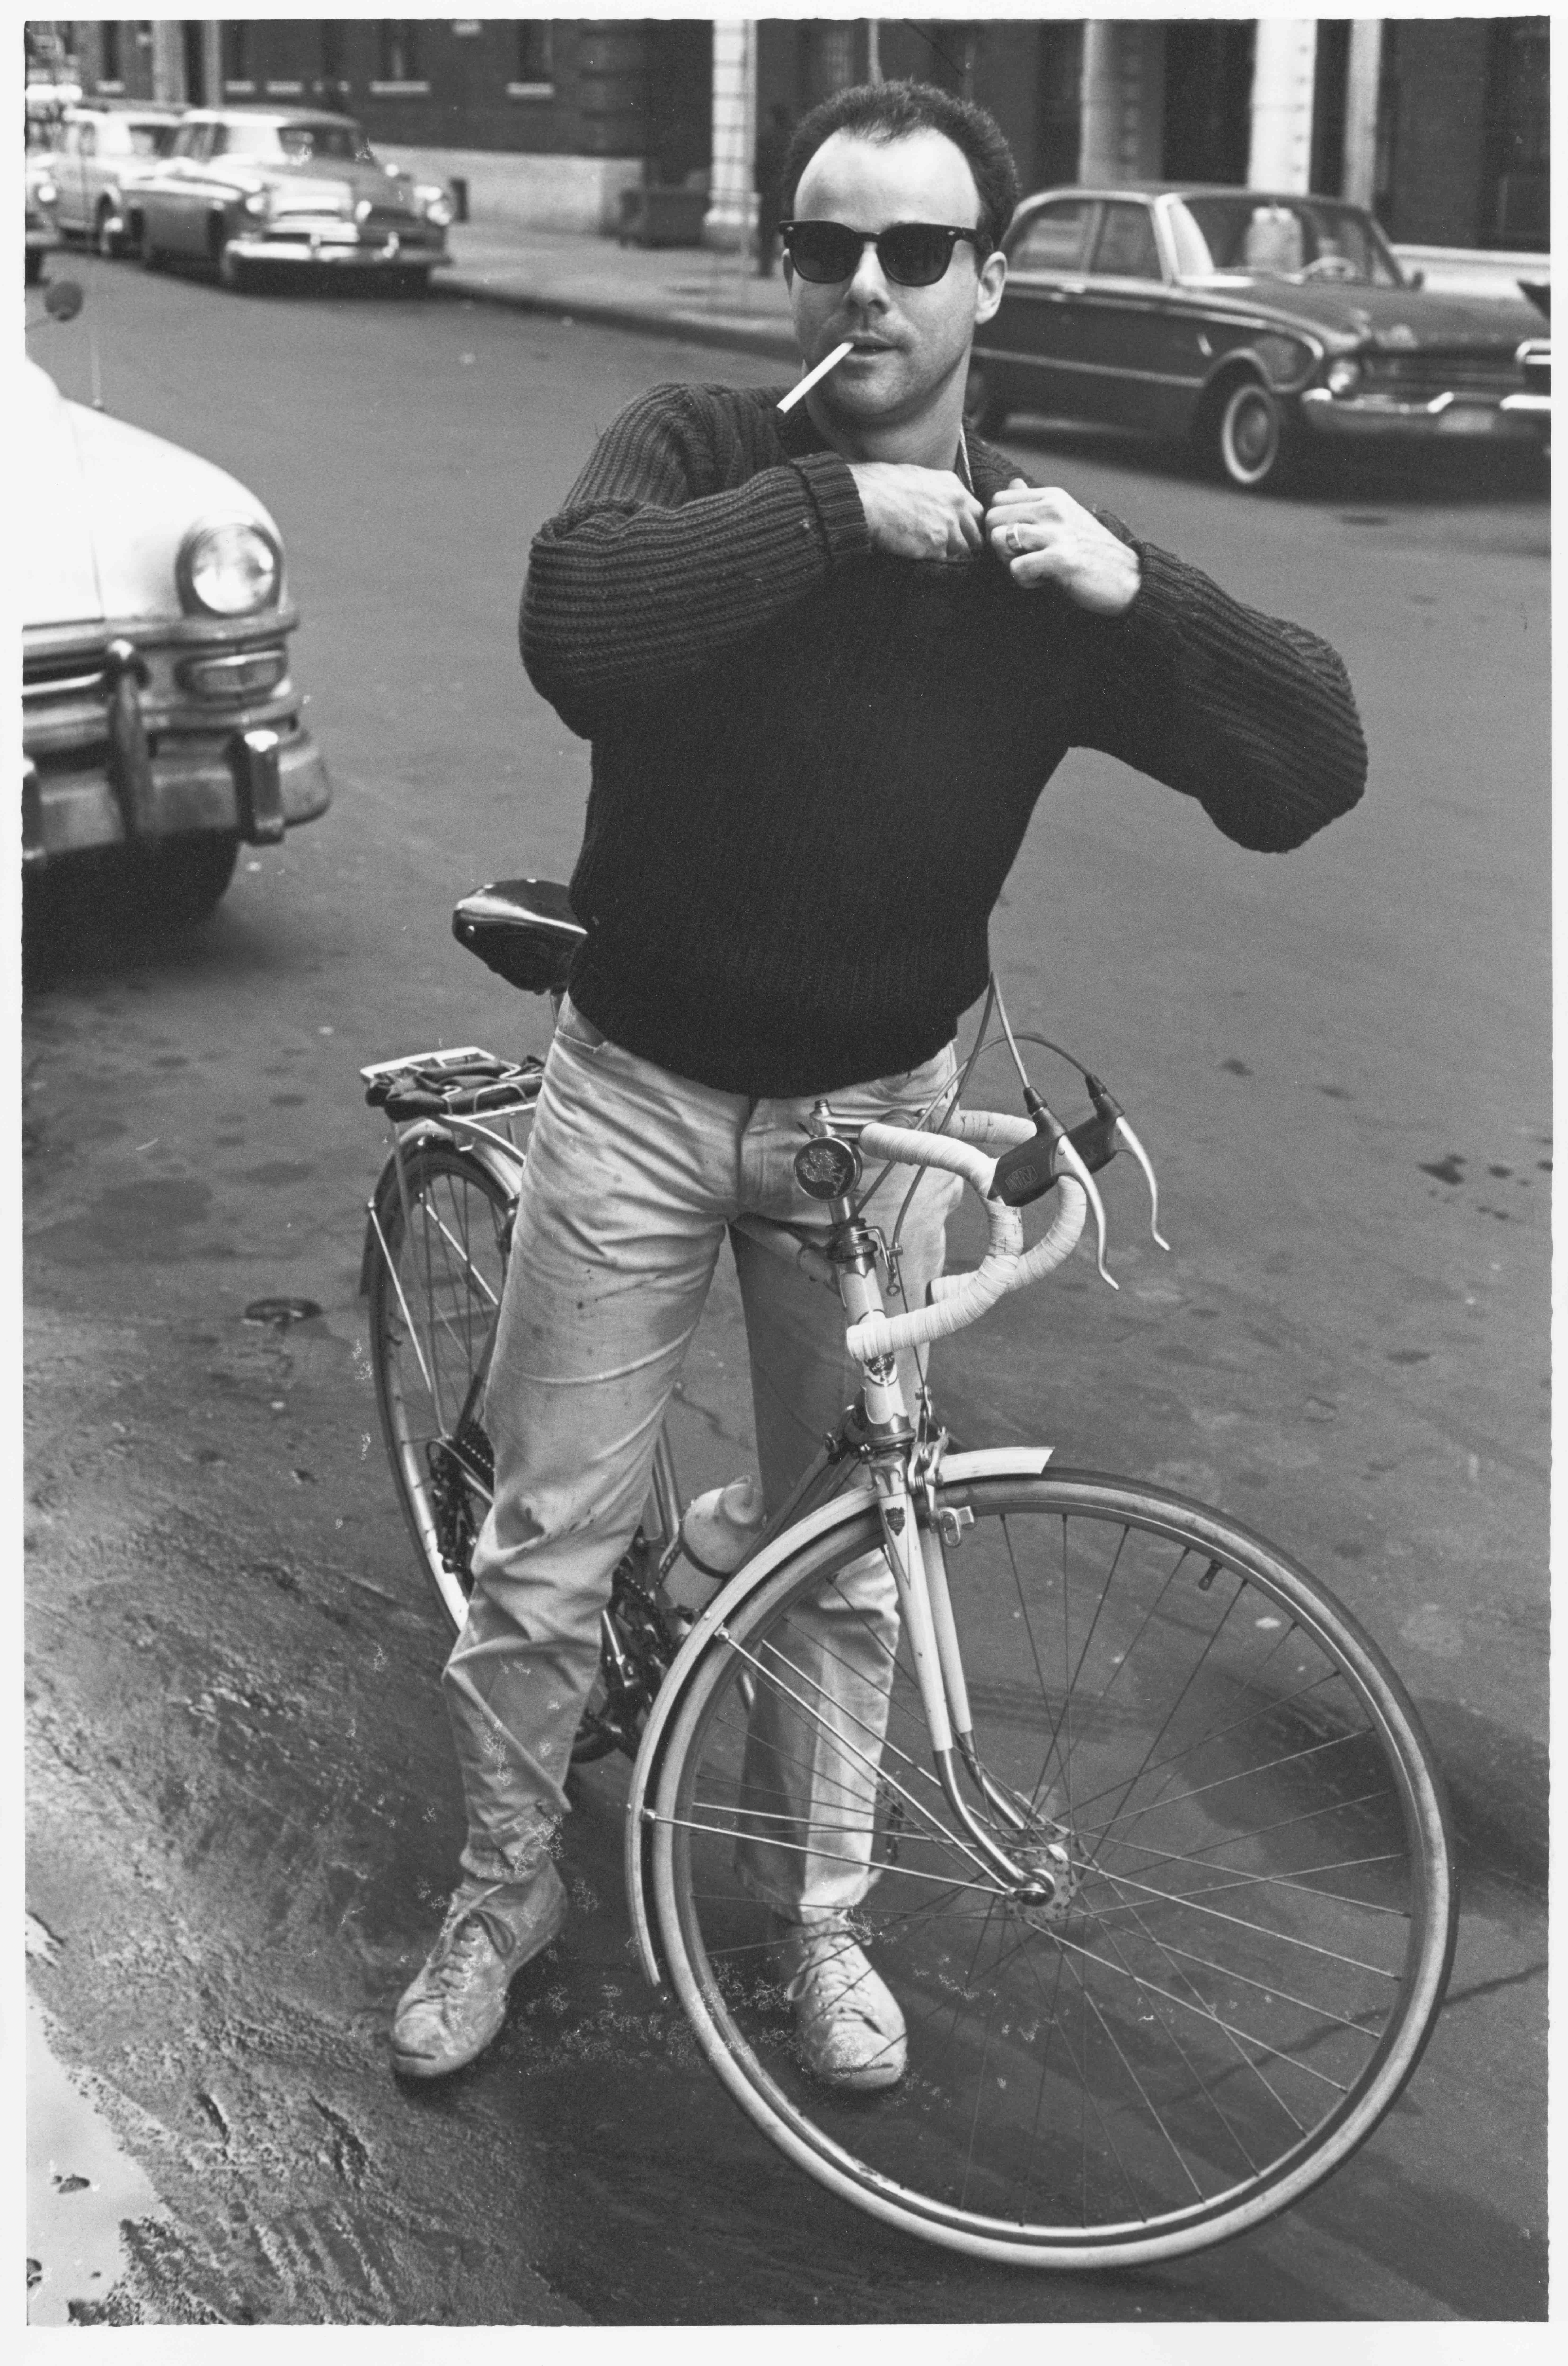 Mark Berghash on his bike, taking a break from his painting studio, 1964